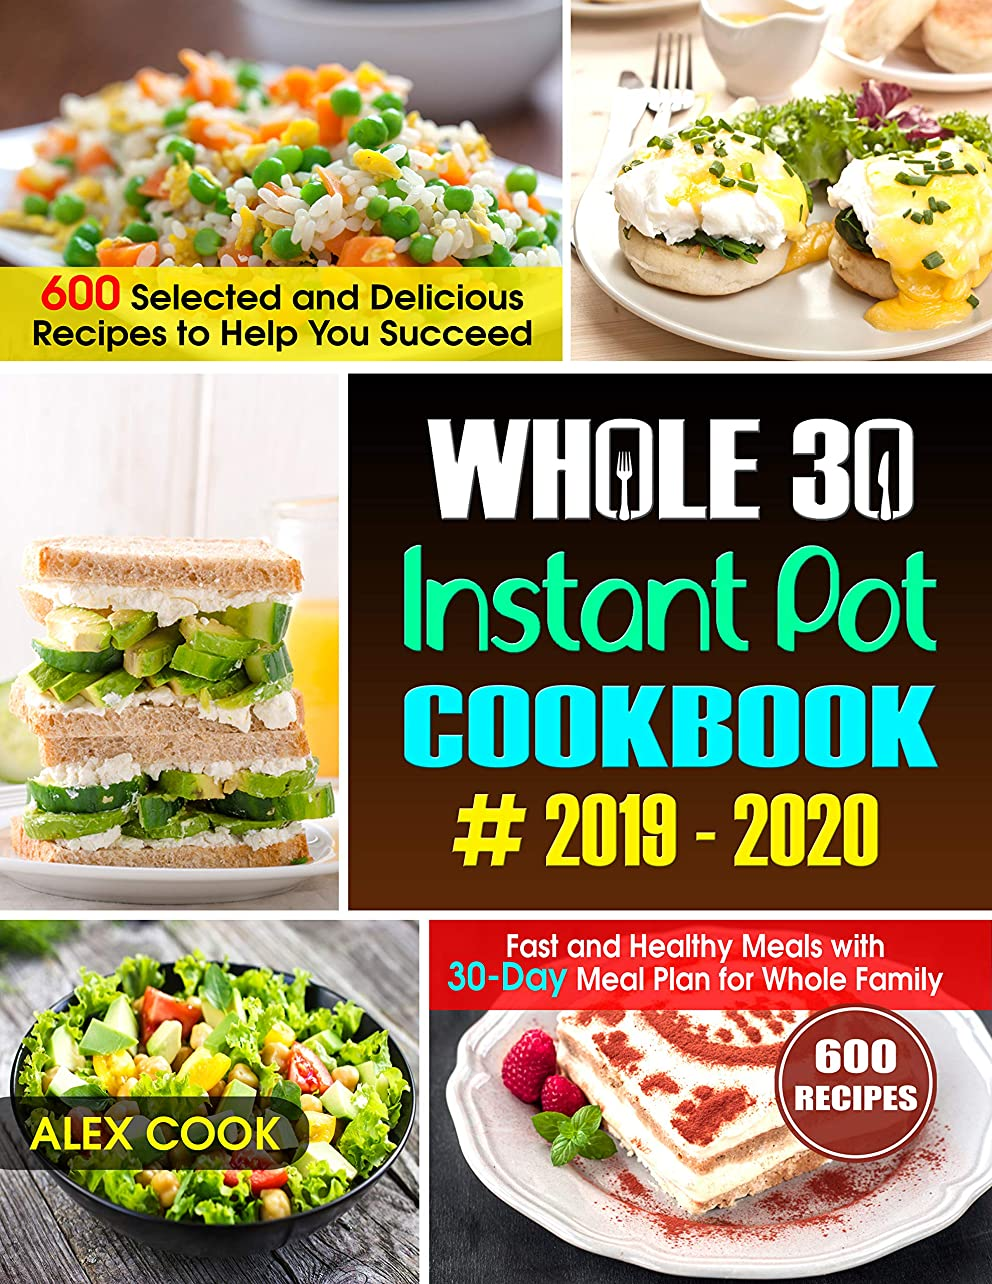 船上特権メディアWHOLE 30 INSTANT POT COOKBOOK #2019-2020: 600 Selected and Delicious Recipes to Help You Succeed :Fast and Healthy Meals with 30-Day Meal Plan for Whole Family (English Edition)